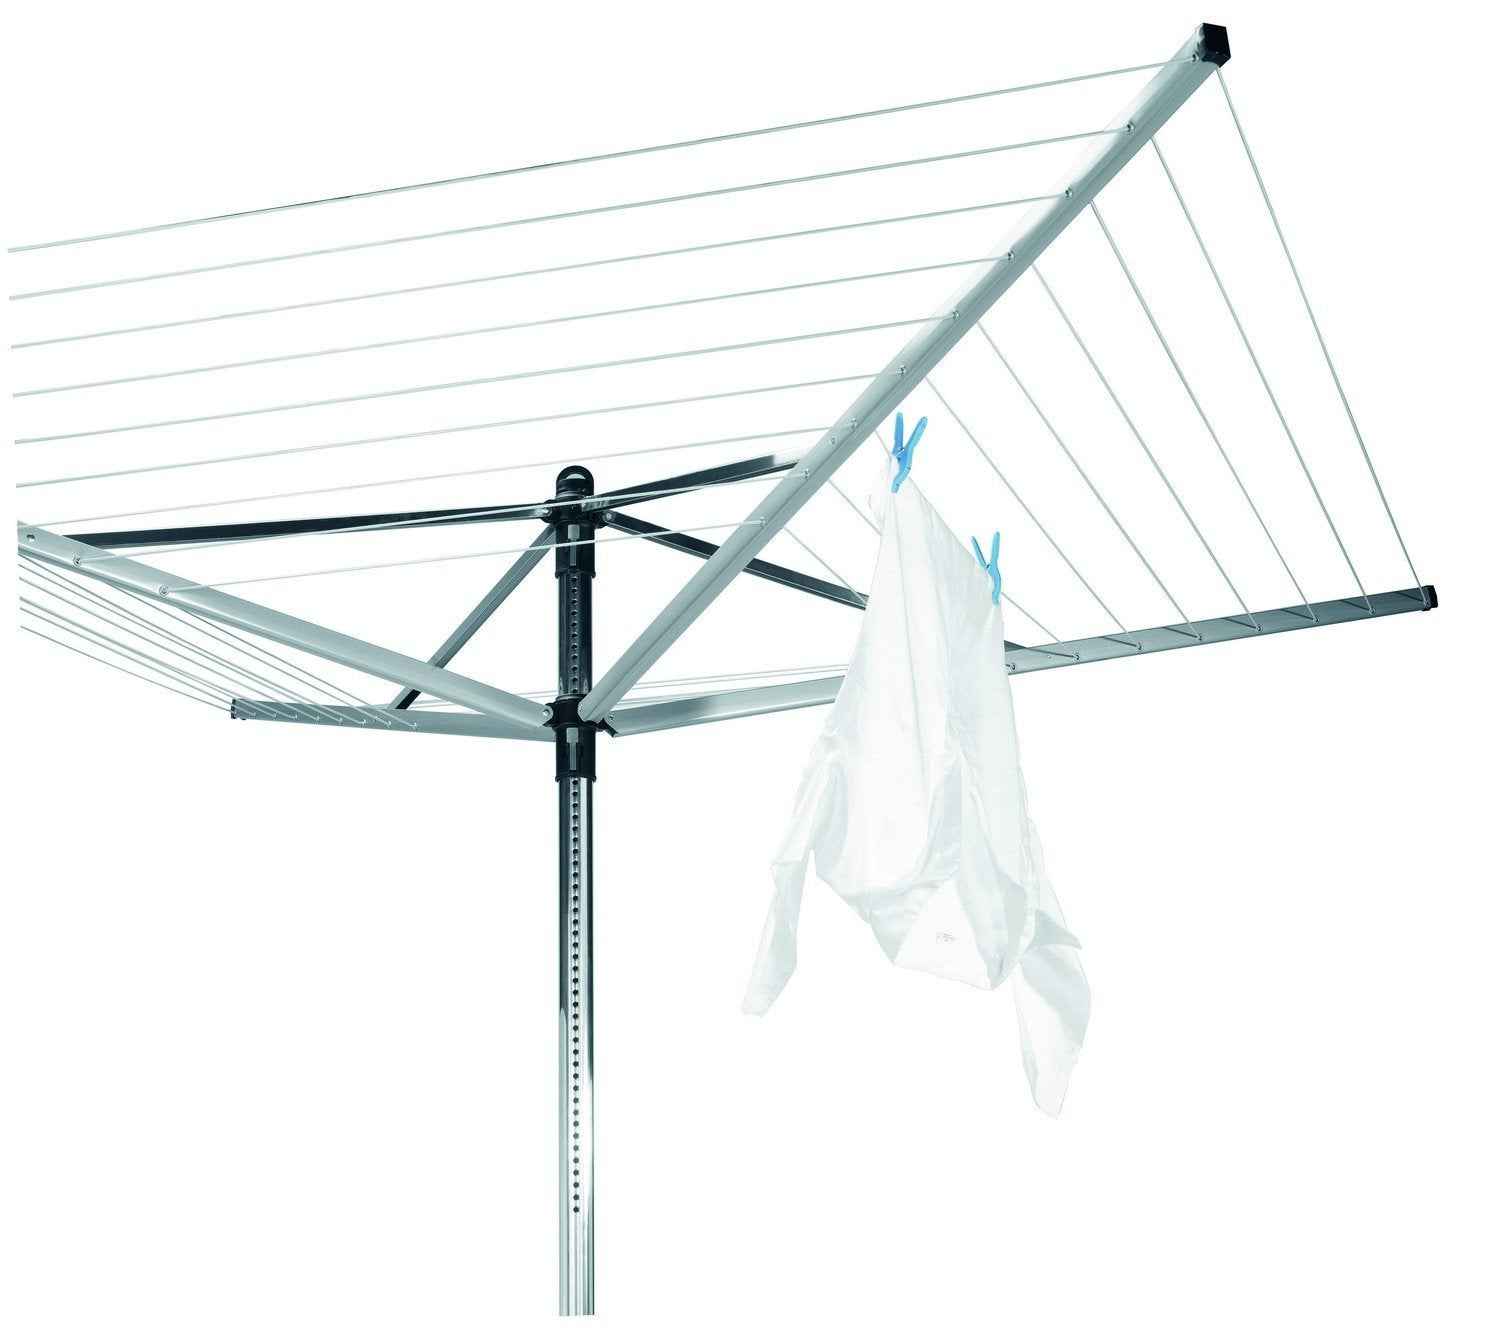 Brabantia Lift-O-Matic Rotary Dryer Clothes Line - 196 feet, 311048